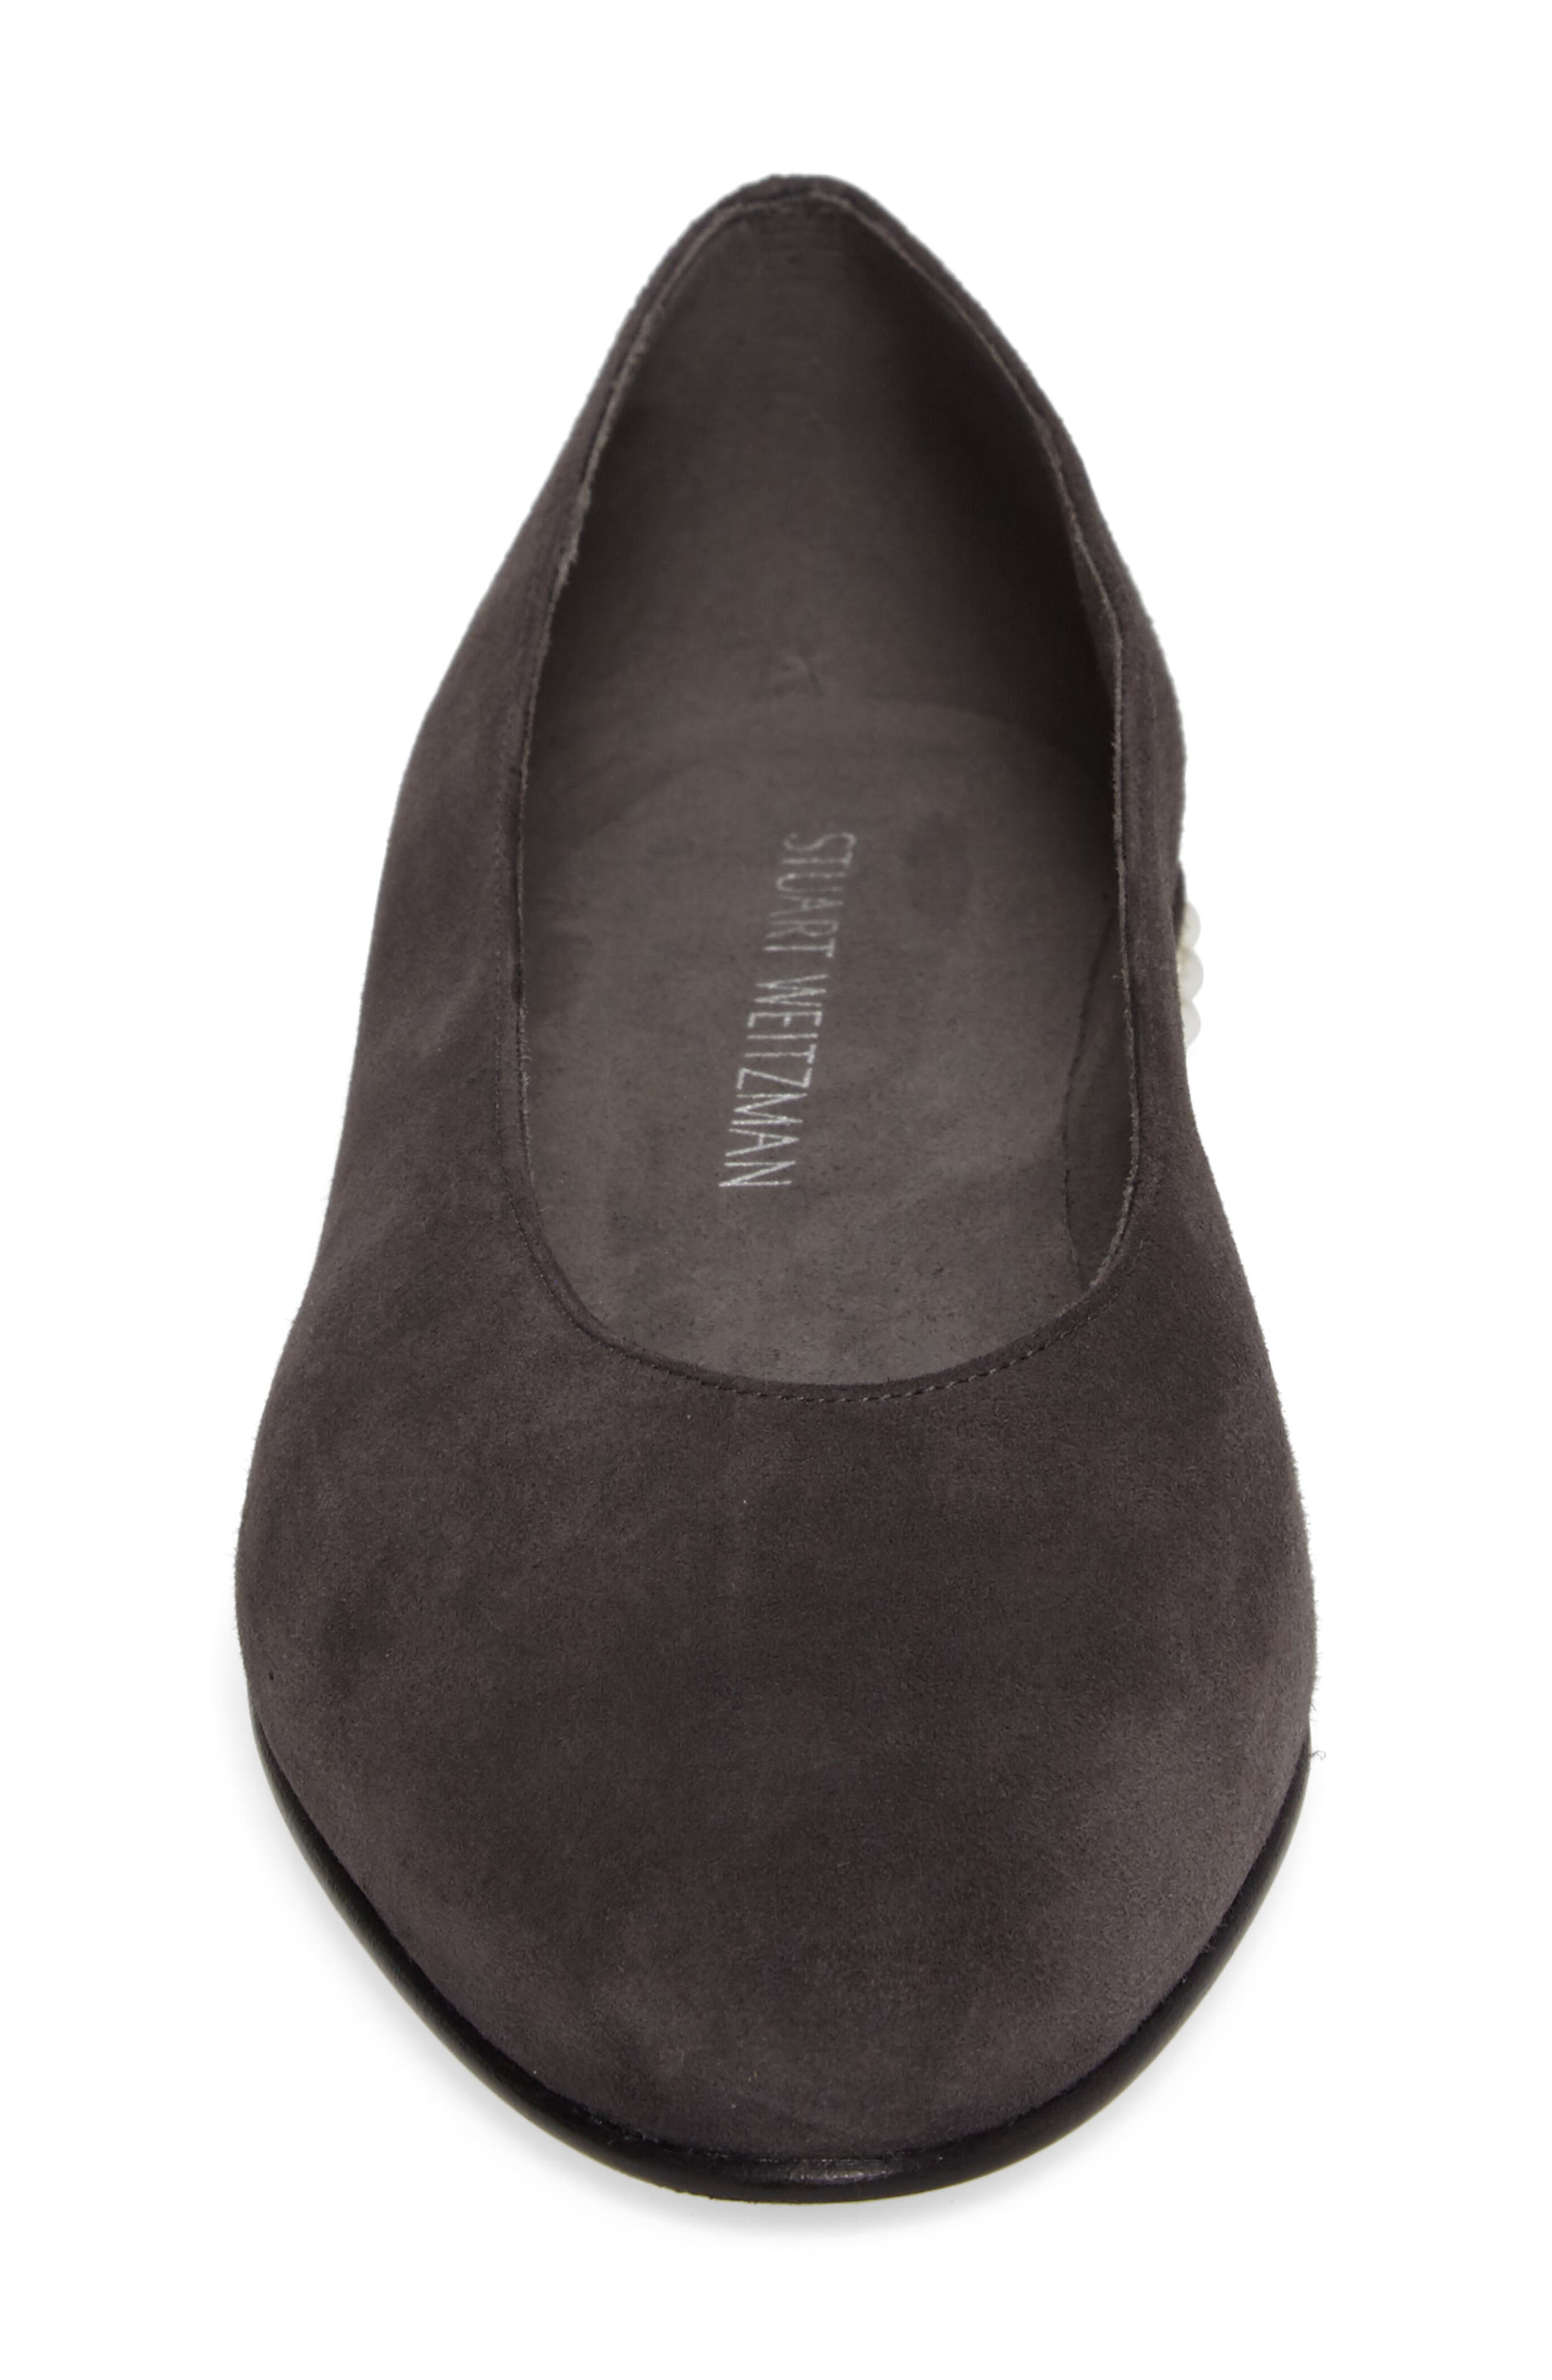 Chicpearl Ballet Flat,                             Alternate thumbnail 4, color,                             020